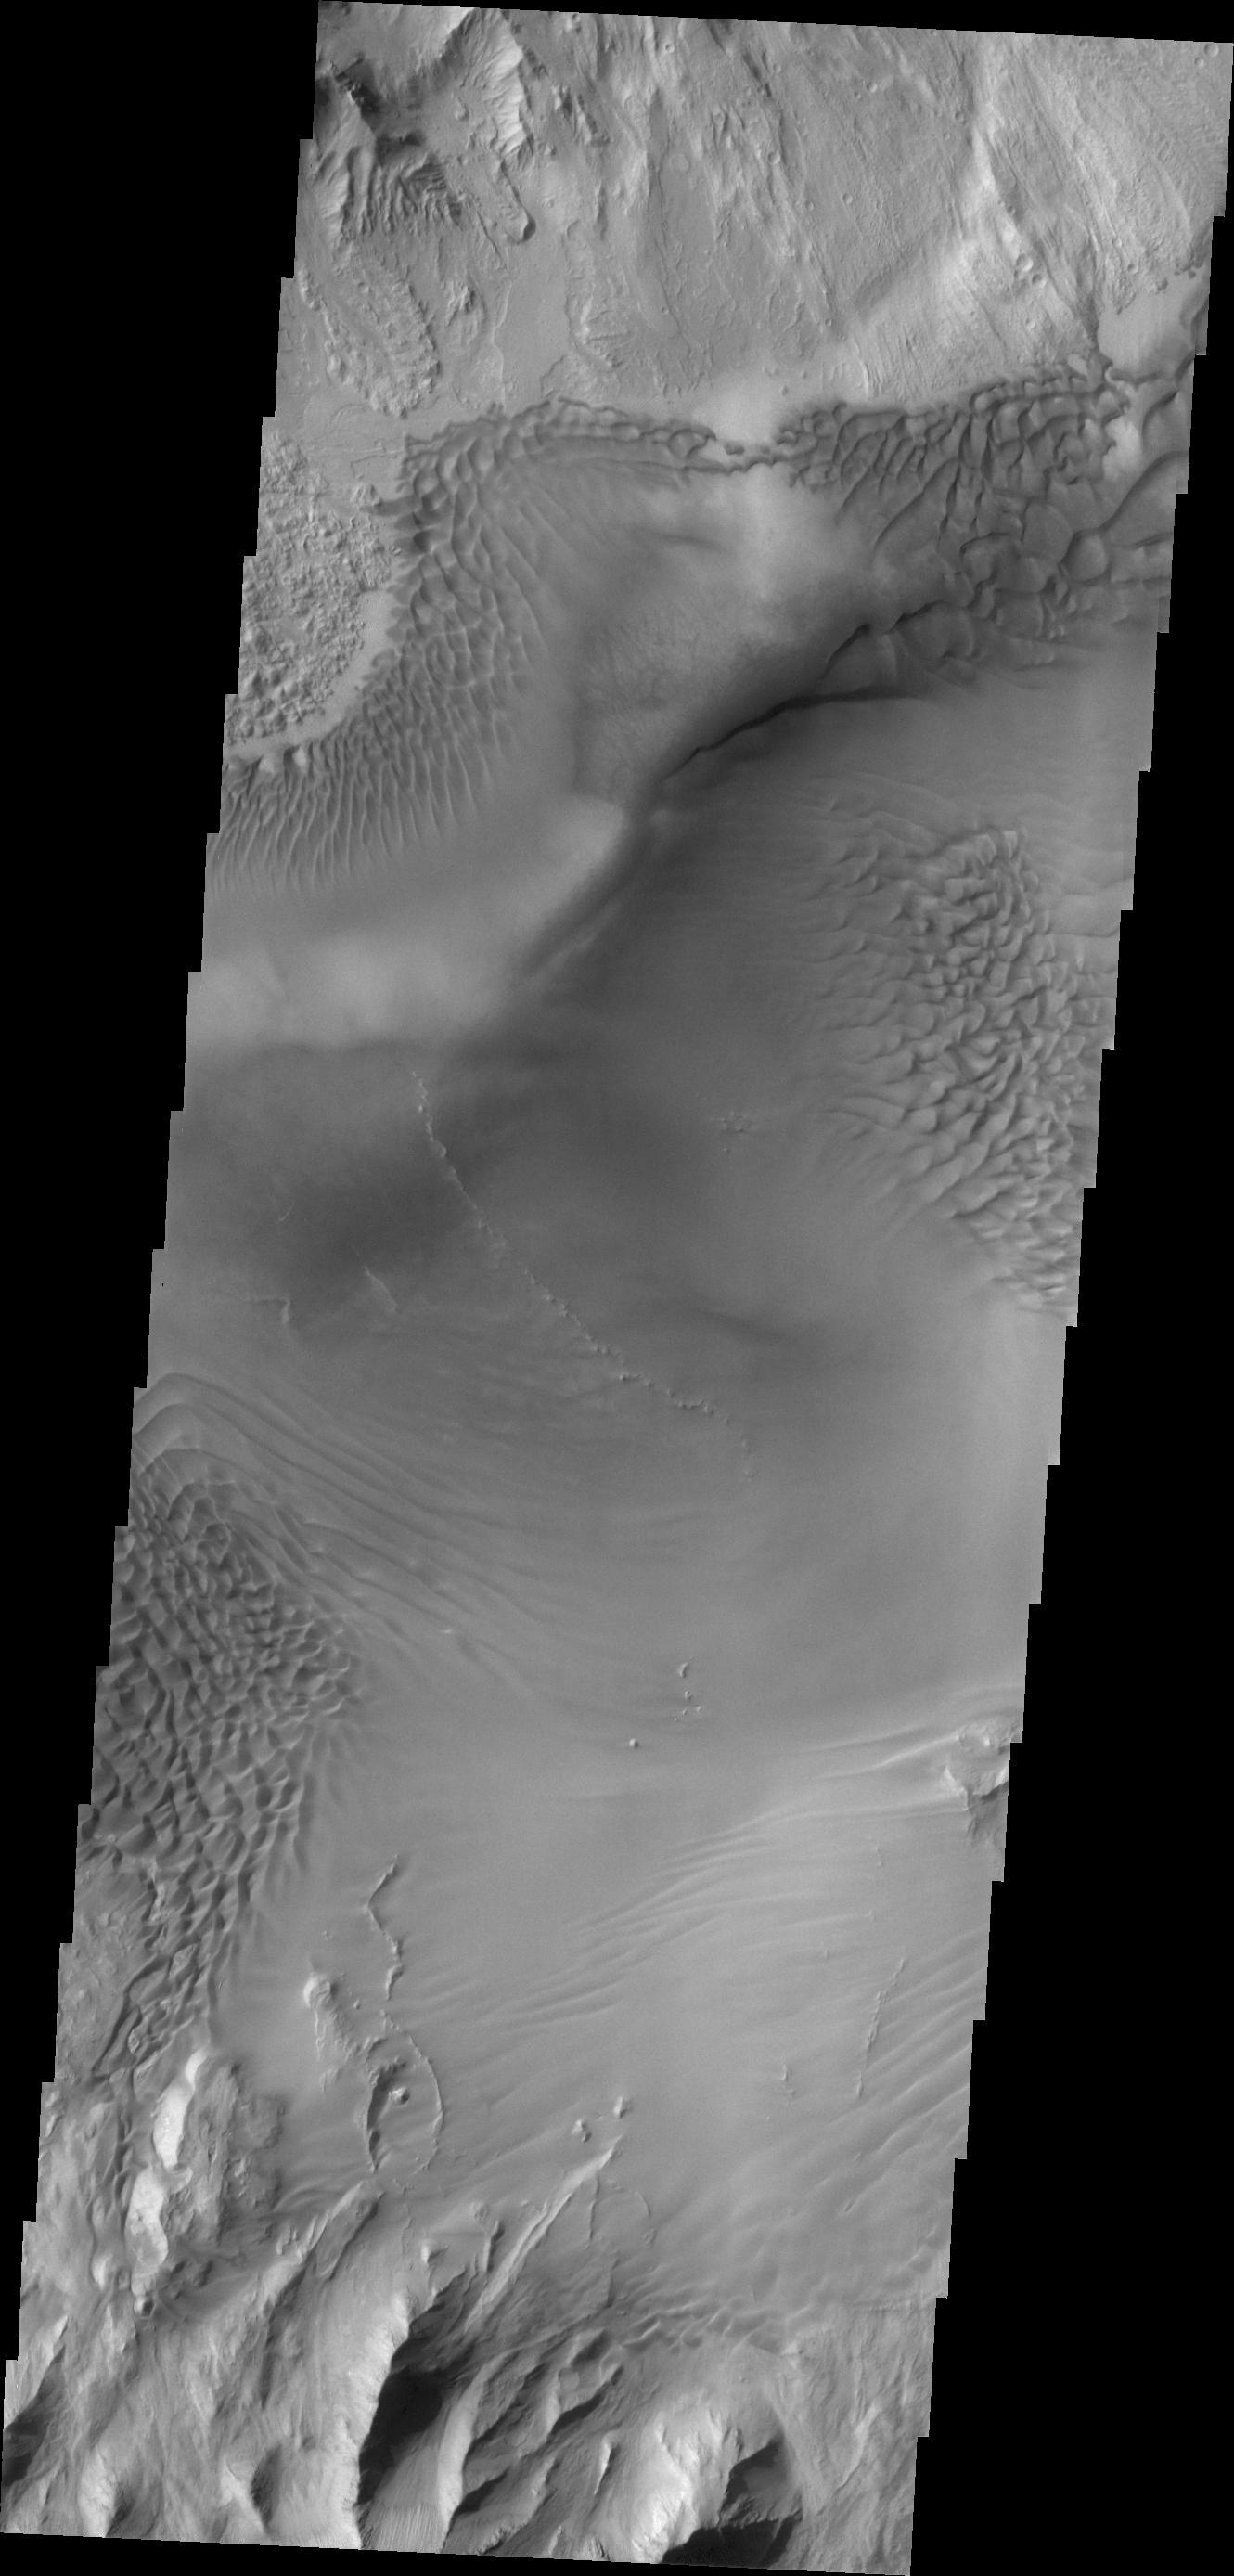 Baetis Chasma is a chasmata near but not directly connected to Valles Marineris. Dunes are prevalent on the floor of this portion of Juventae Chasma in this image taken by NASA's 2001 Mars Odyssey.